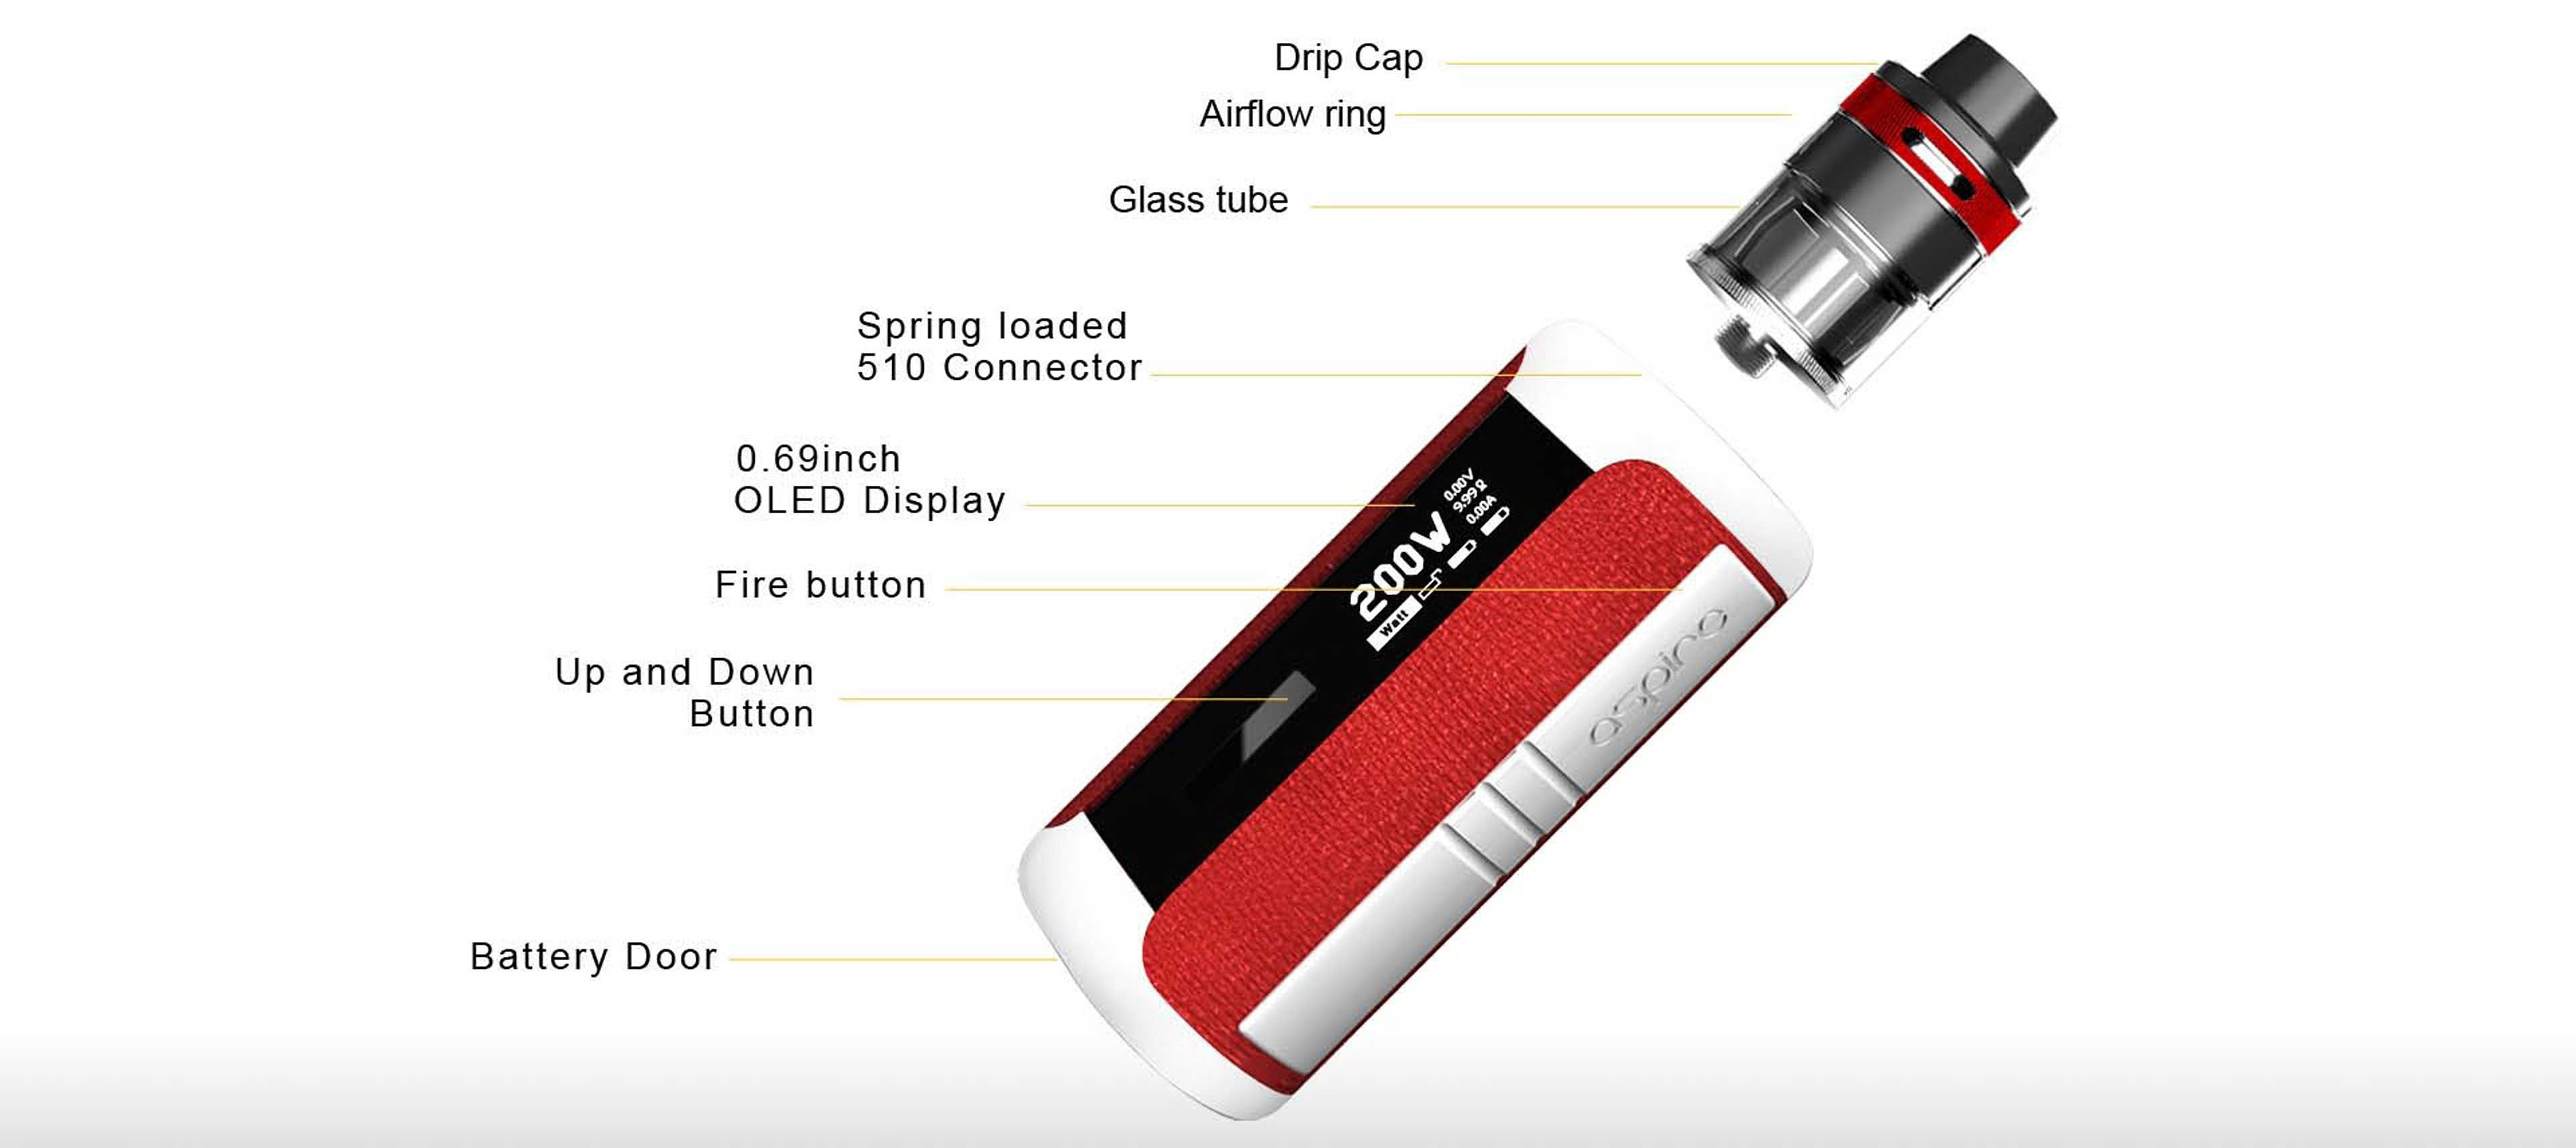 Aspire Speeder Revvo Kit Component View